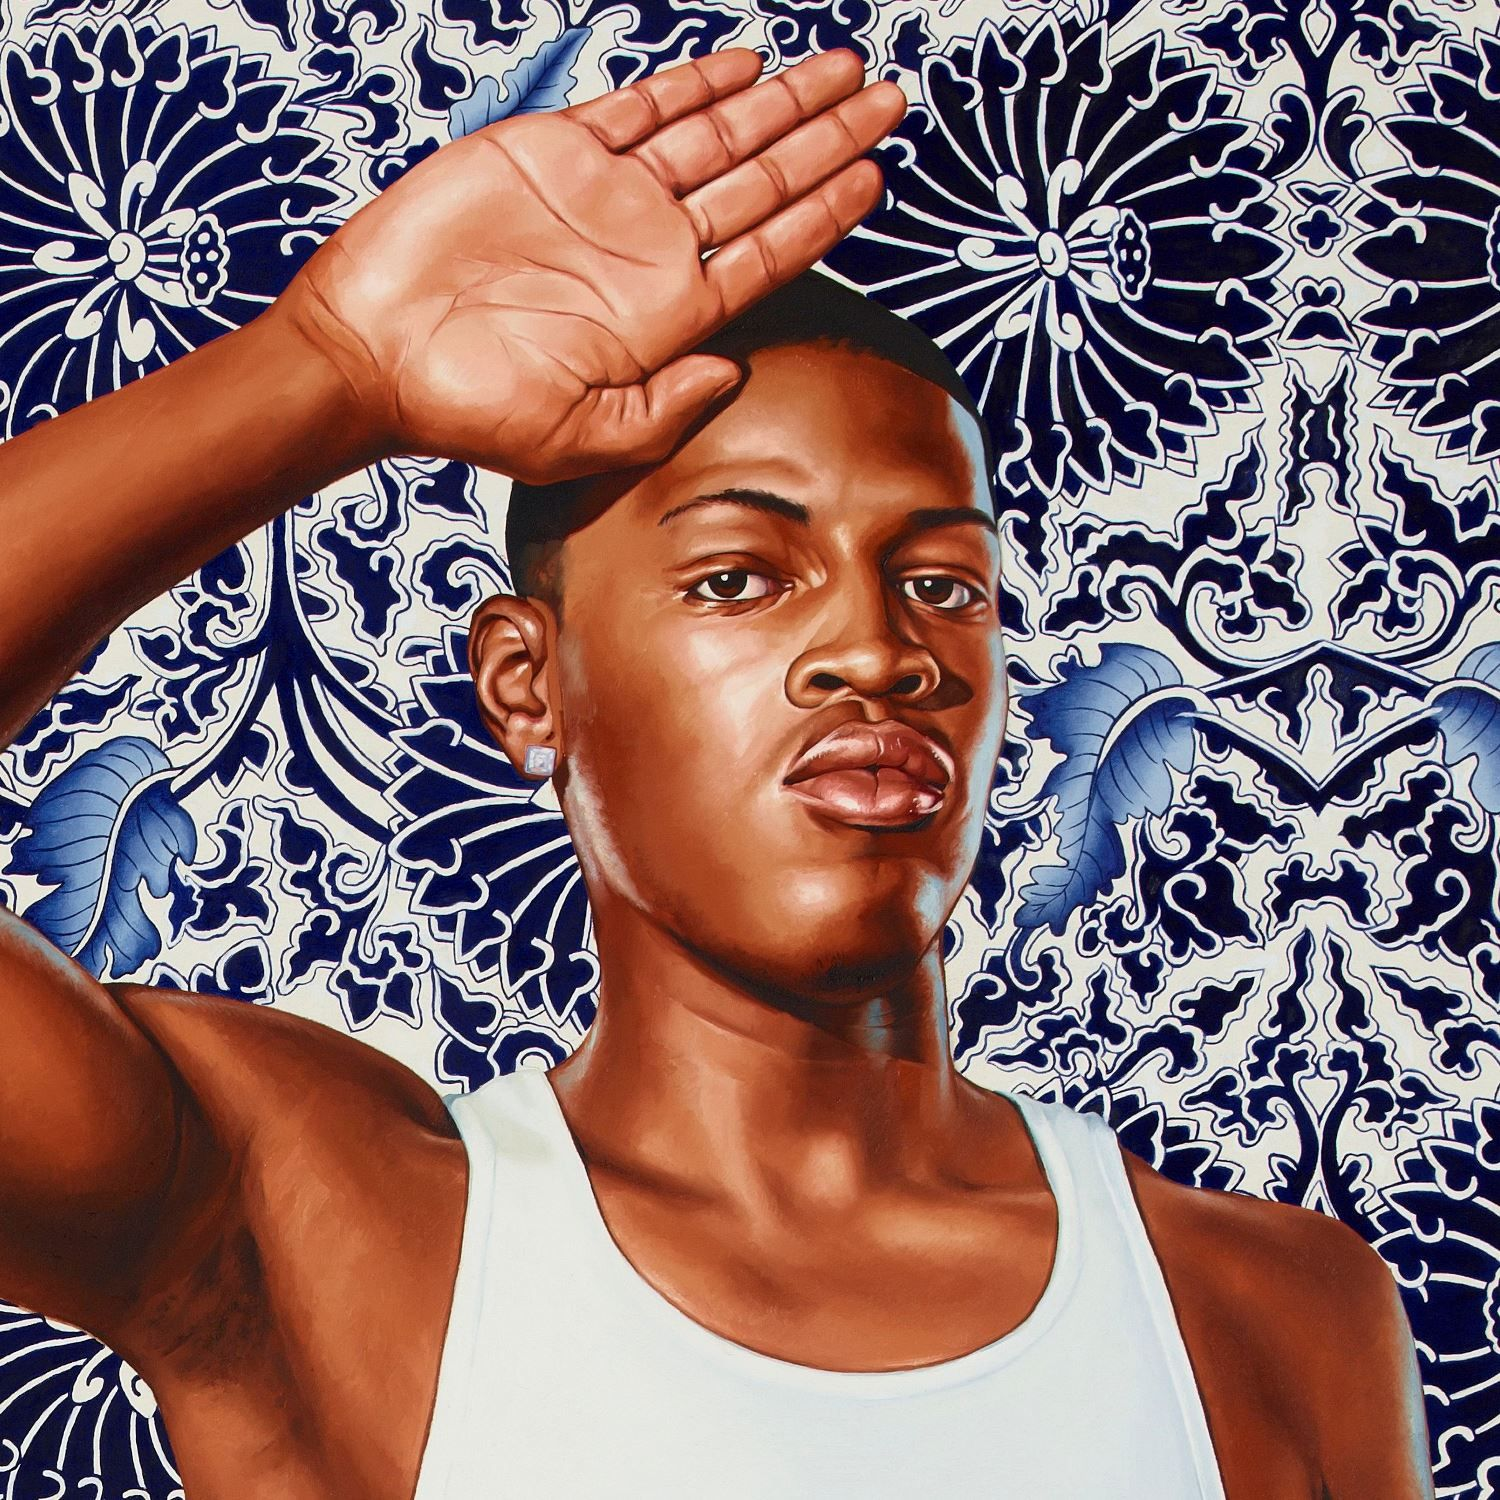 <p>Kehinde Wiley (American, b. 1977). <em>Two Heroic Sisters of the Grassland</em>, 2011. Oil on canvas, 96 &times; 84 in. (243.8 &times; 213.4 cm). Hort Family Collection. &copy; Kehinde Wiley. (Photo: Max Yawney)</p>